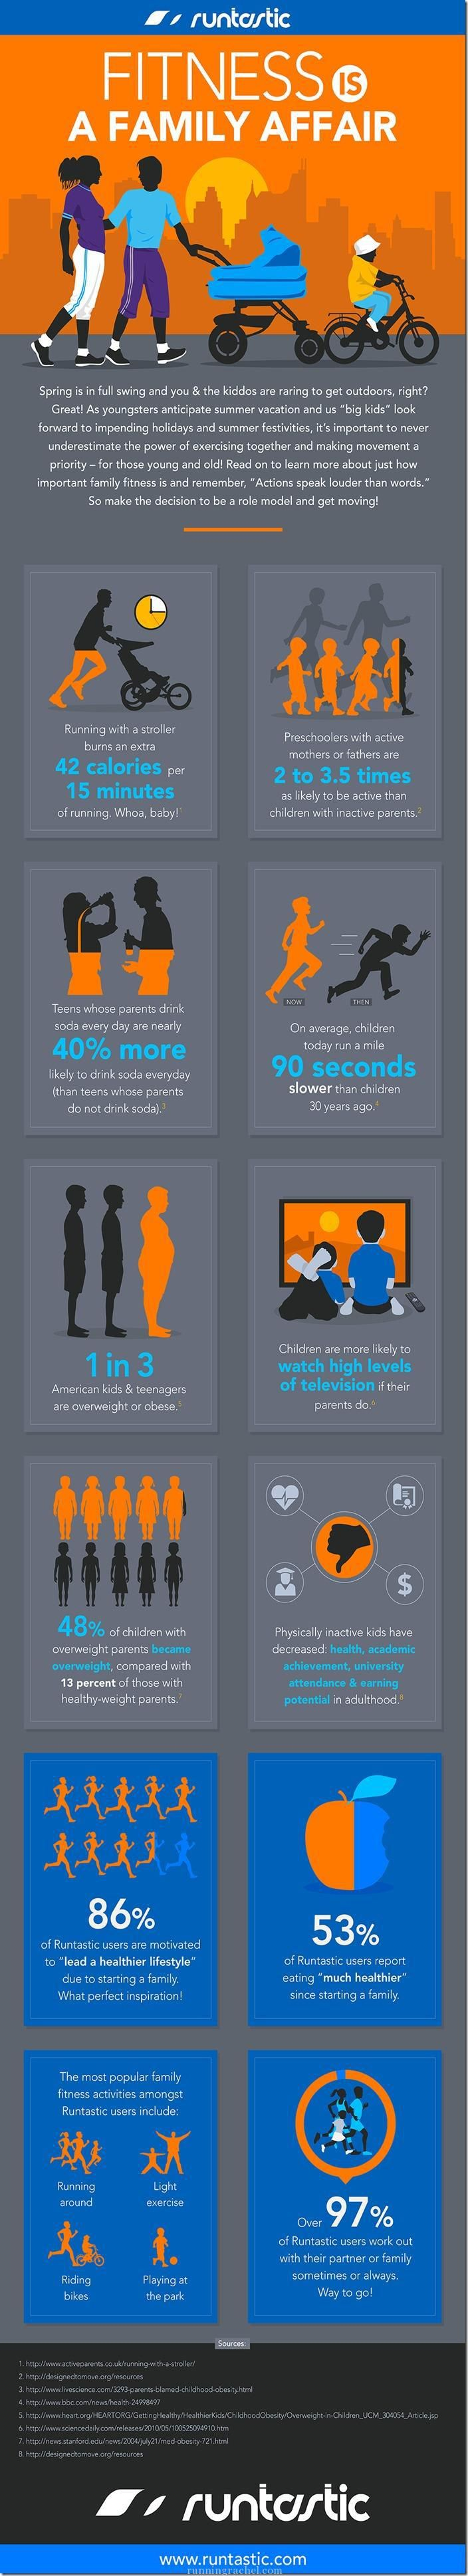 runtastic change takes time, family fitness infographic